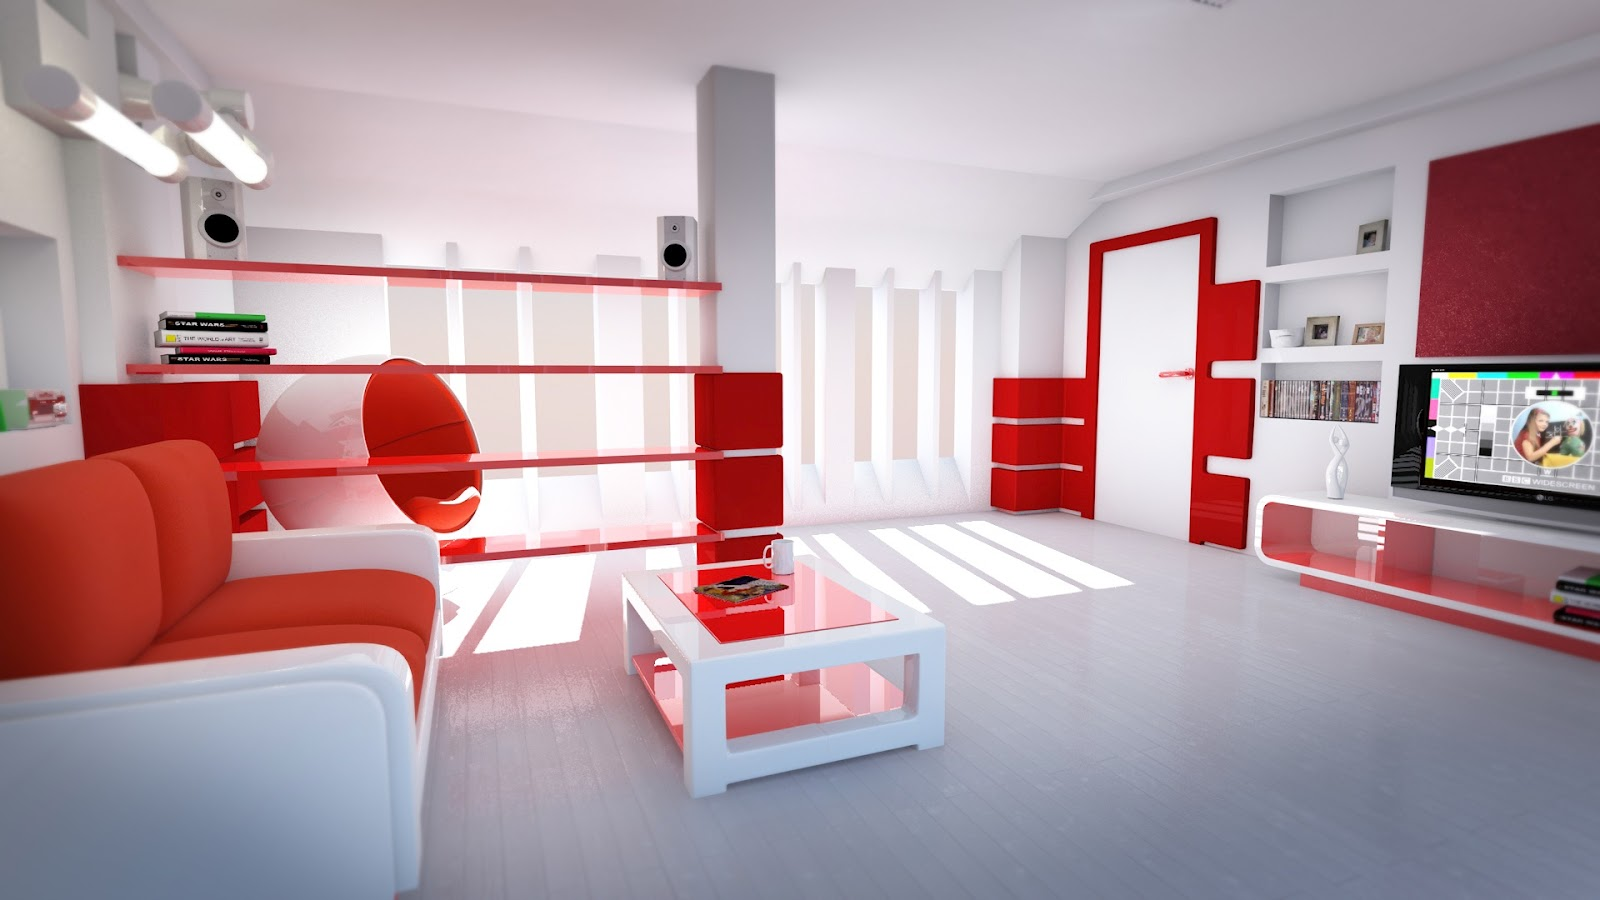 Fotos de casas im genes casas y fachadas for Black red white living room ideas